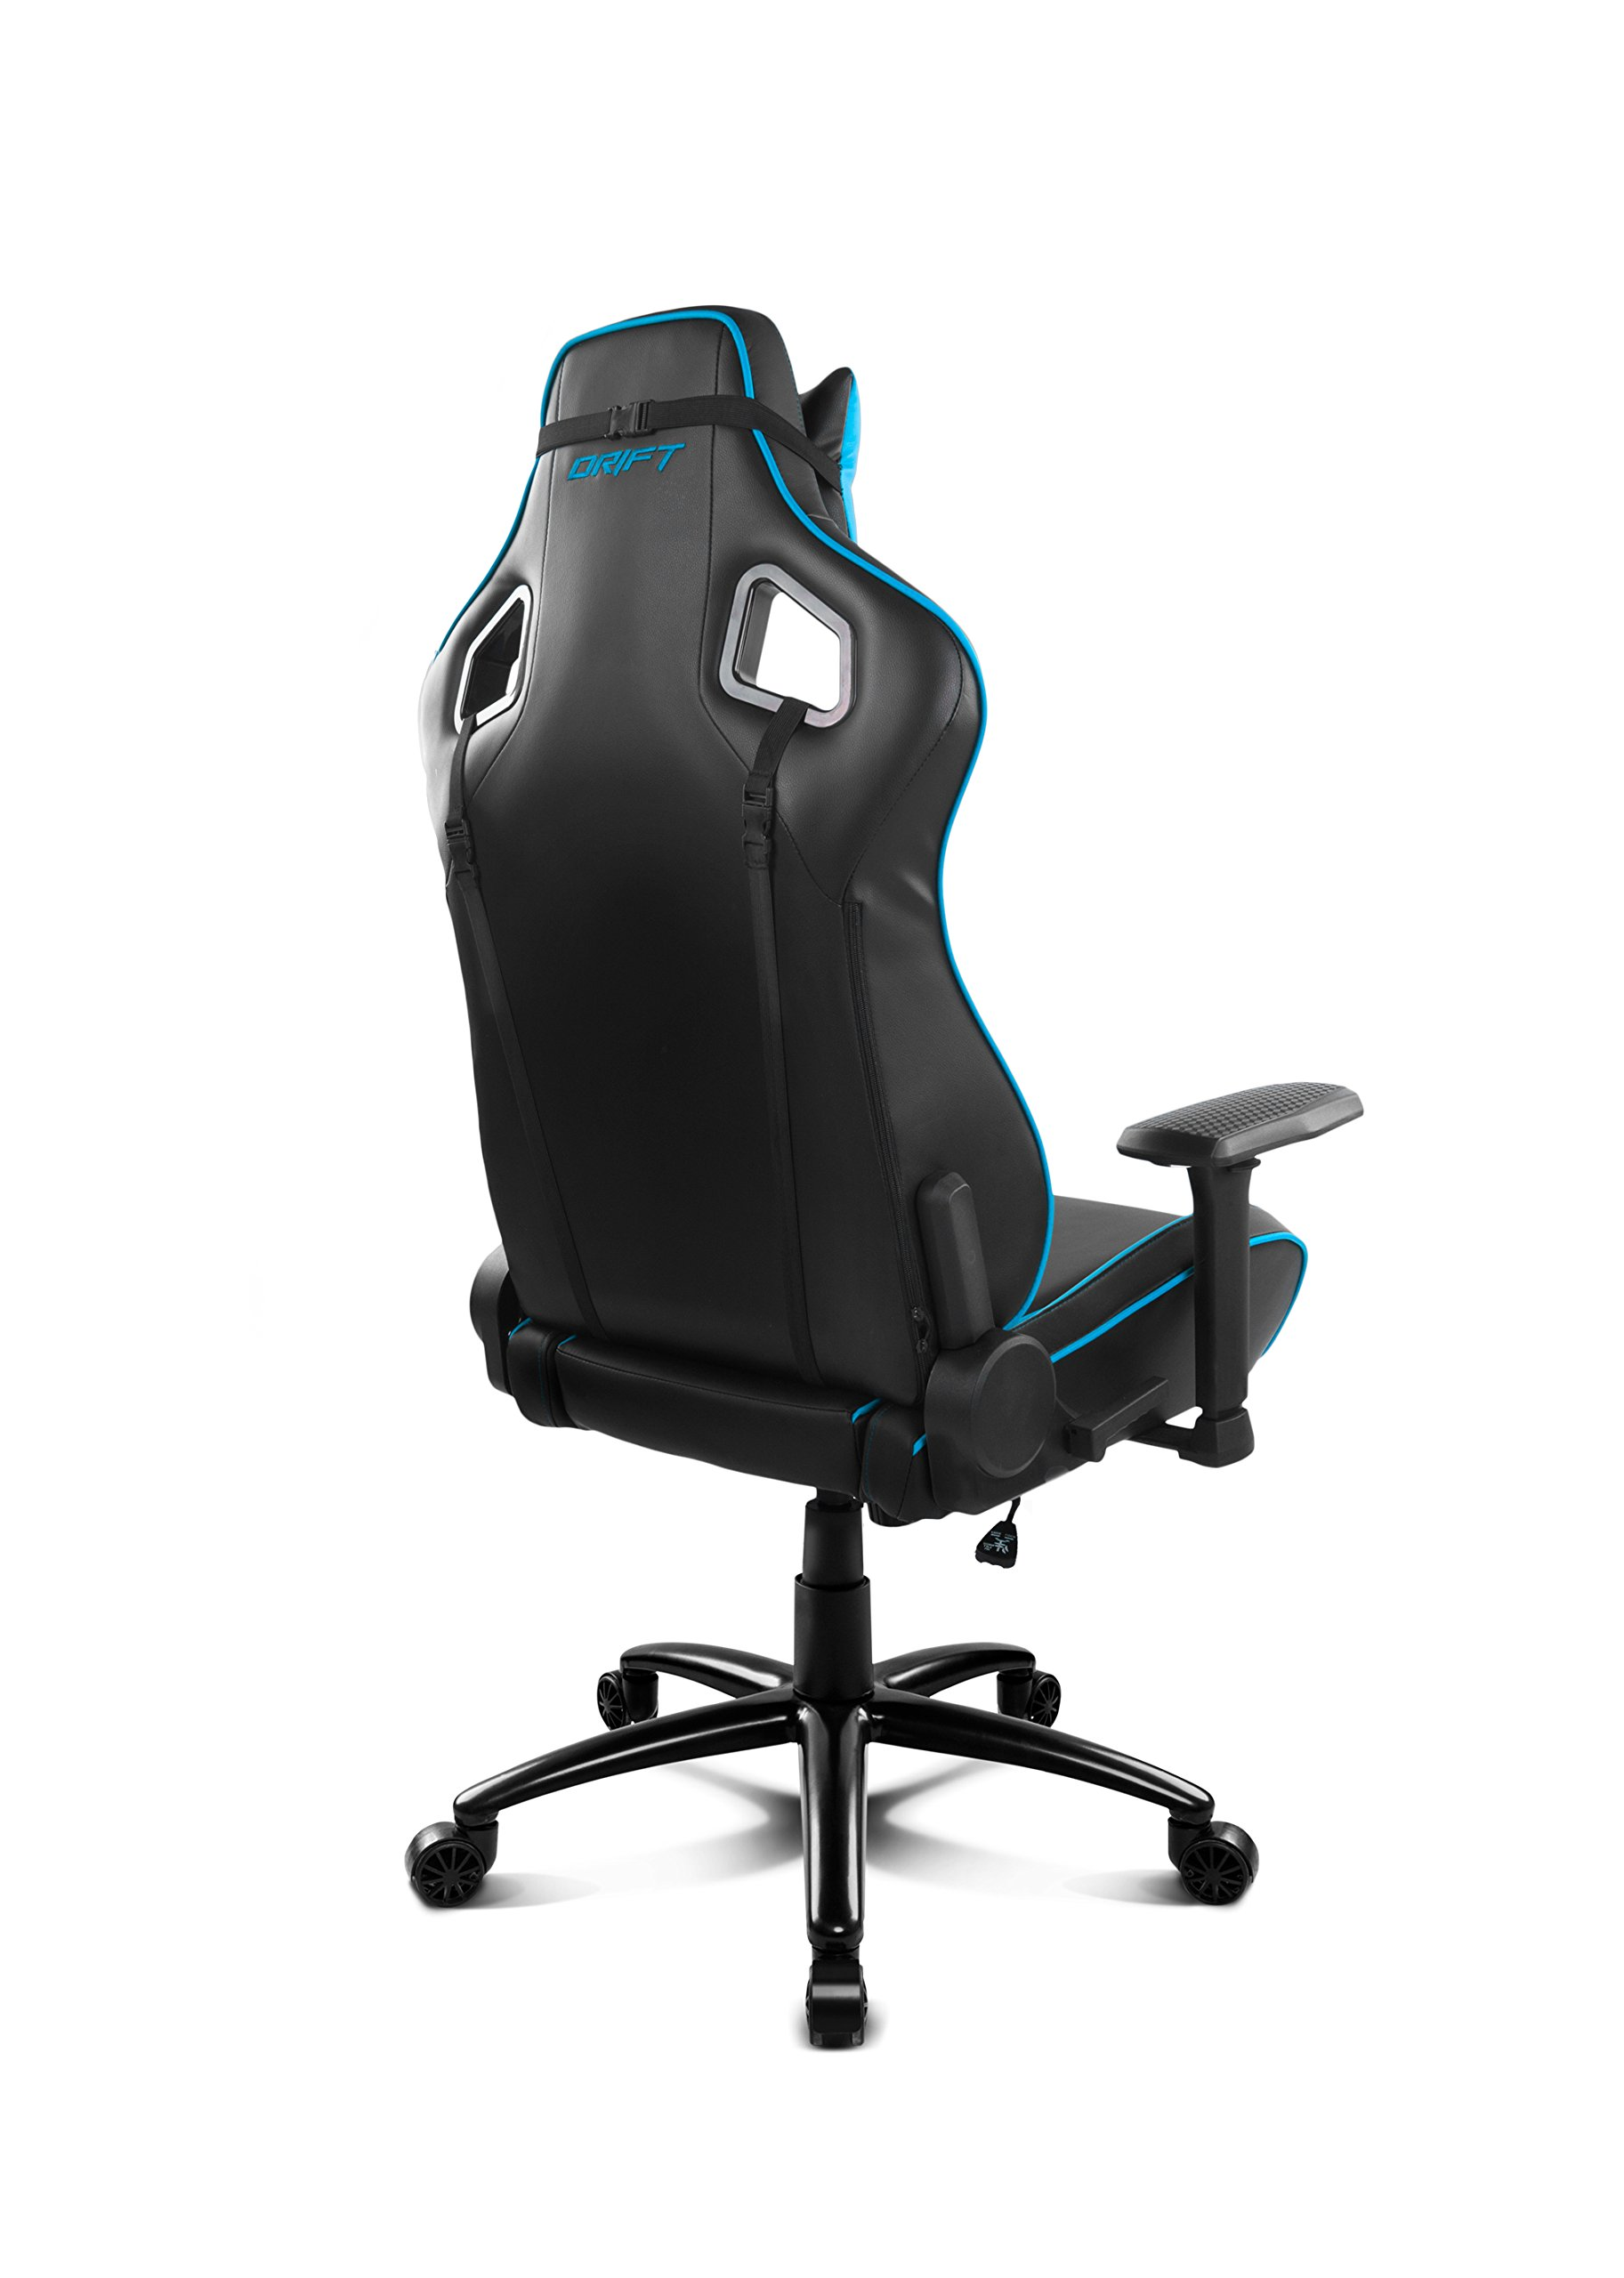 714wPf7i8AL - Drift DR400BL - Silla Gaming, Color Negro y Azul